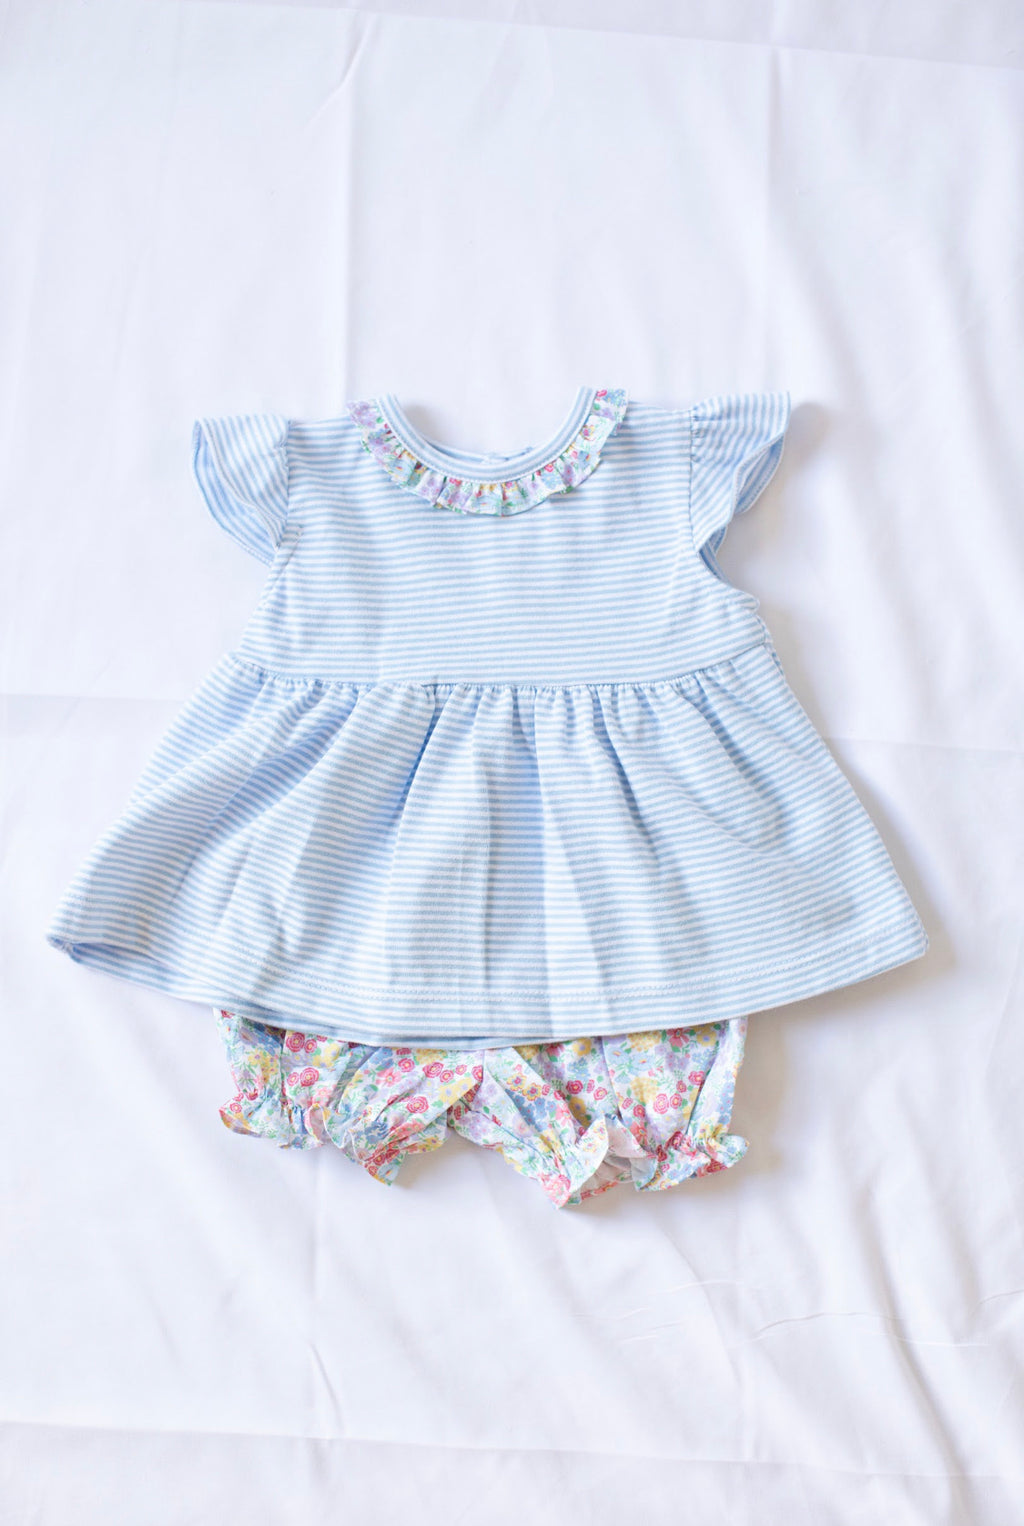 Ruffle Knit Bloomer Set - Churchill Floral Bloomer W Blue Candy Stripe Top - Born Childrens Boutique